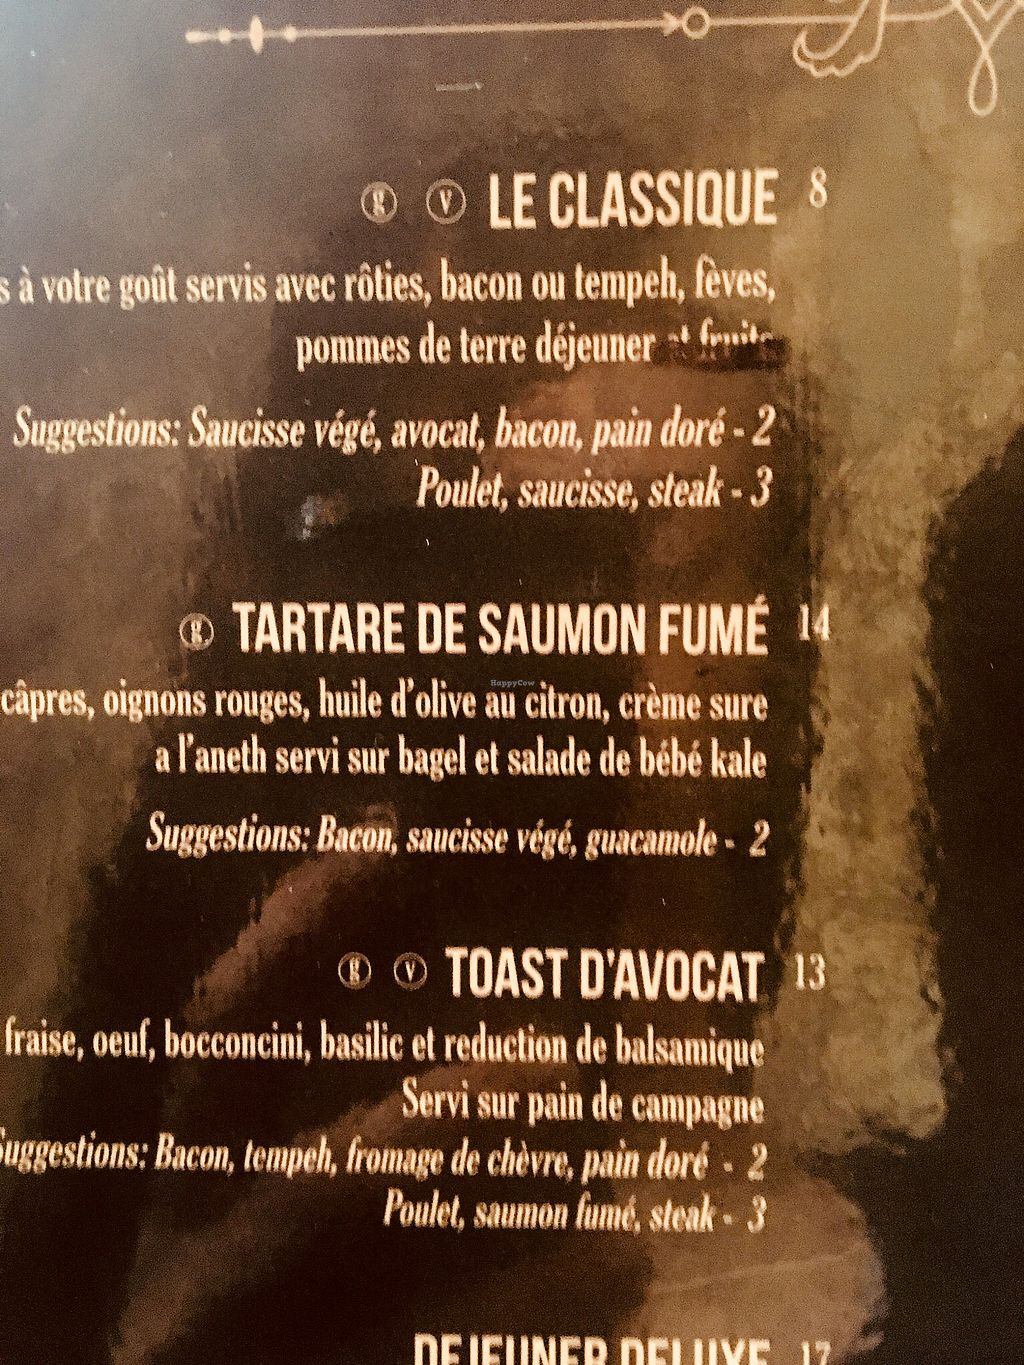 """Photo of L'Gros Luxe  by <a href=""""/members/profile/AliceBernier"""">AliceBernier</a> <br/>menu page 1 <br/> January 28, 2018  - <a href='/contact/abuse/image/110637/352081'>Report</a>"""